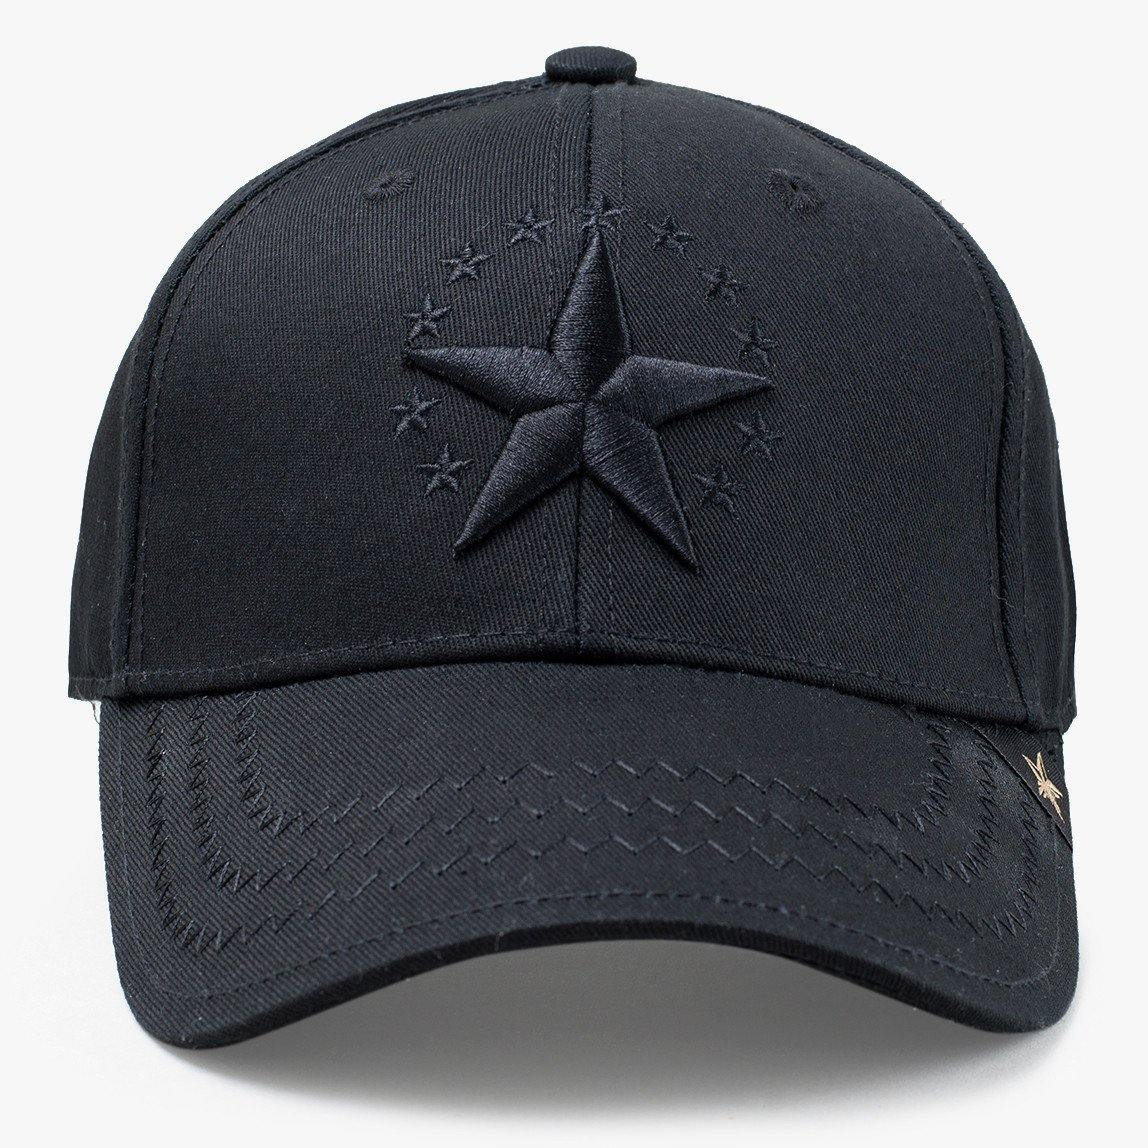 Star Allblack Baseball Hat